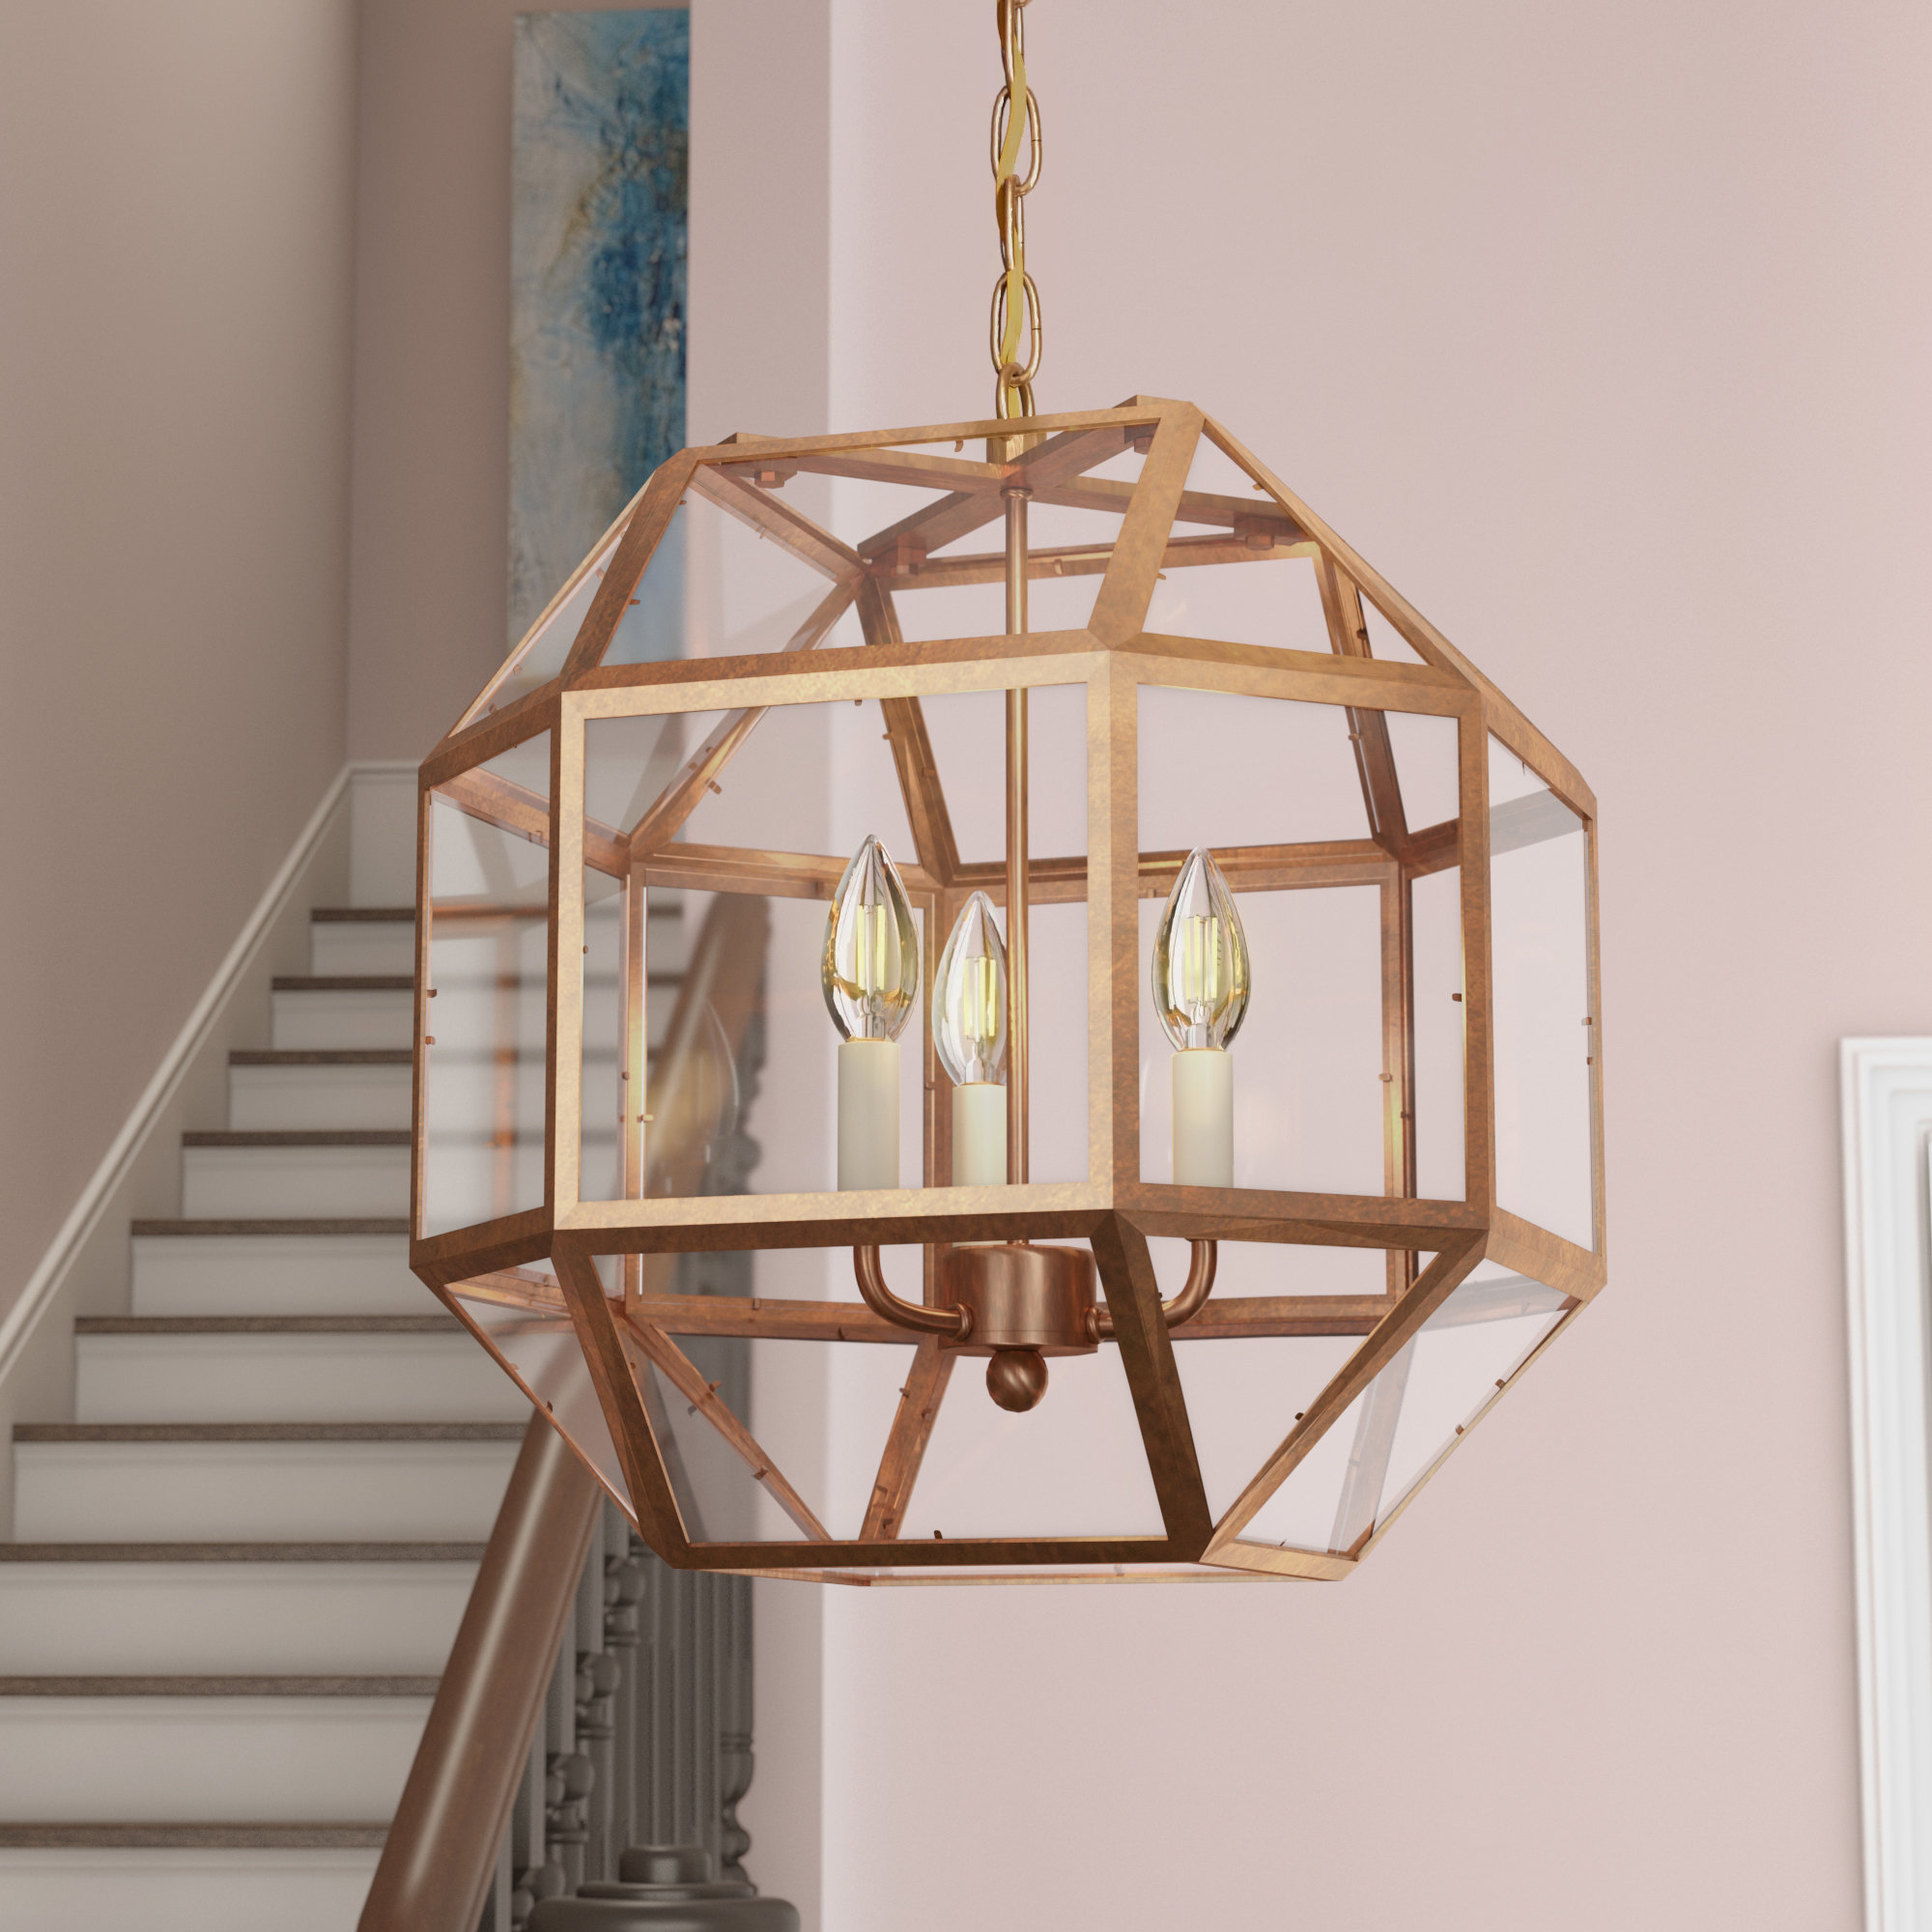 [%Geometric Chandeliers Sale – Up To 65% Off Until September Throughout 2019 Tabit 5 Light Geometric Chandeliers|Tabit 5 Light Geometric Chandeliers Intended For Newest Geometric Chandeliers Sale – Up To 65% Off Until September|Well Known Tabit 5 Light Geometric Chandeliers In Geometric Chandeliers Sale – Up To 65% Off Until September|Trendy Geometric Chandeliers Sale – Up To 65% Off Until September Inside Tabit 5 Light Geometric Chandeliers%] (View 2 of 20)